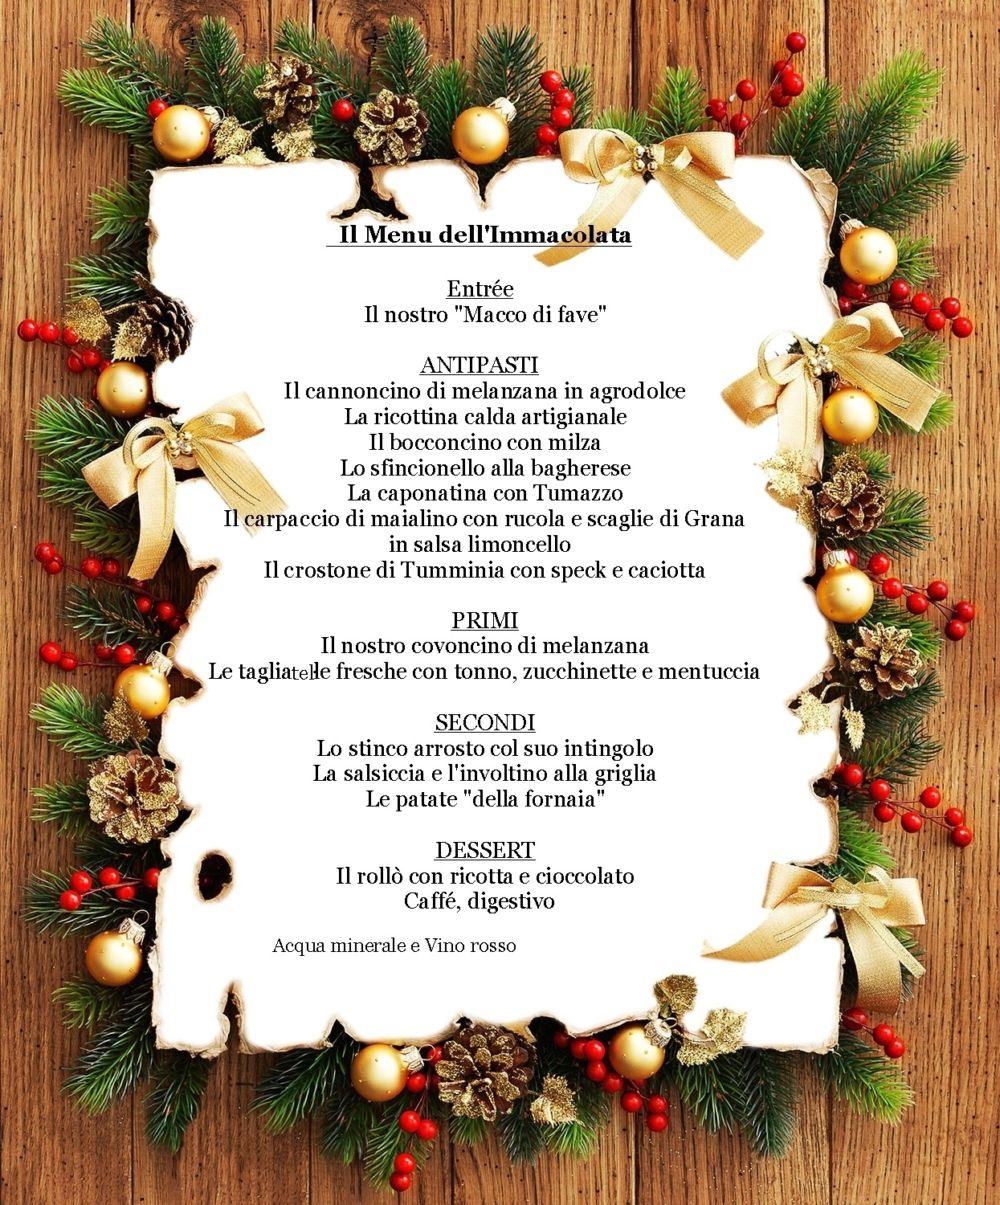 (Italiano) Menu dell'Immacolata